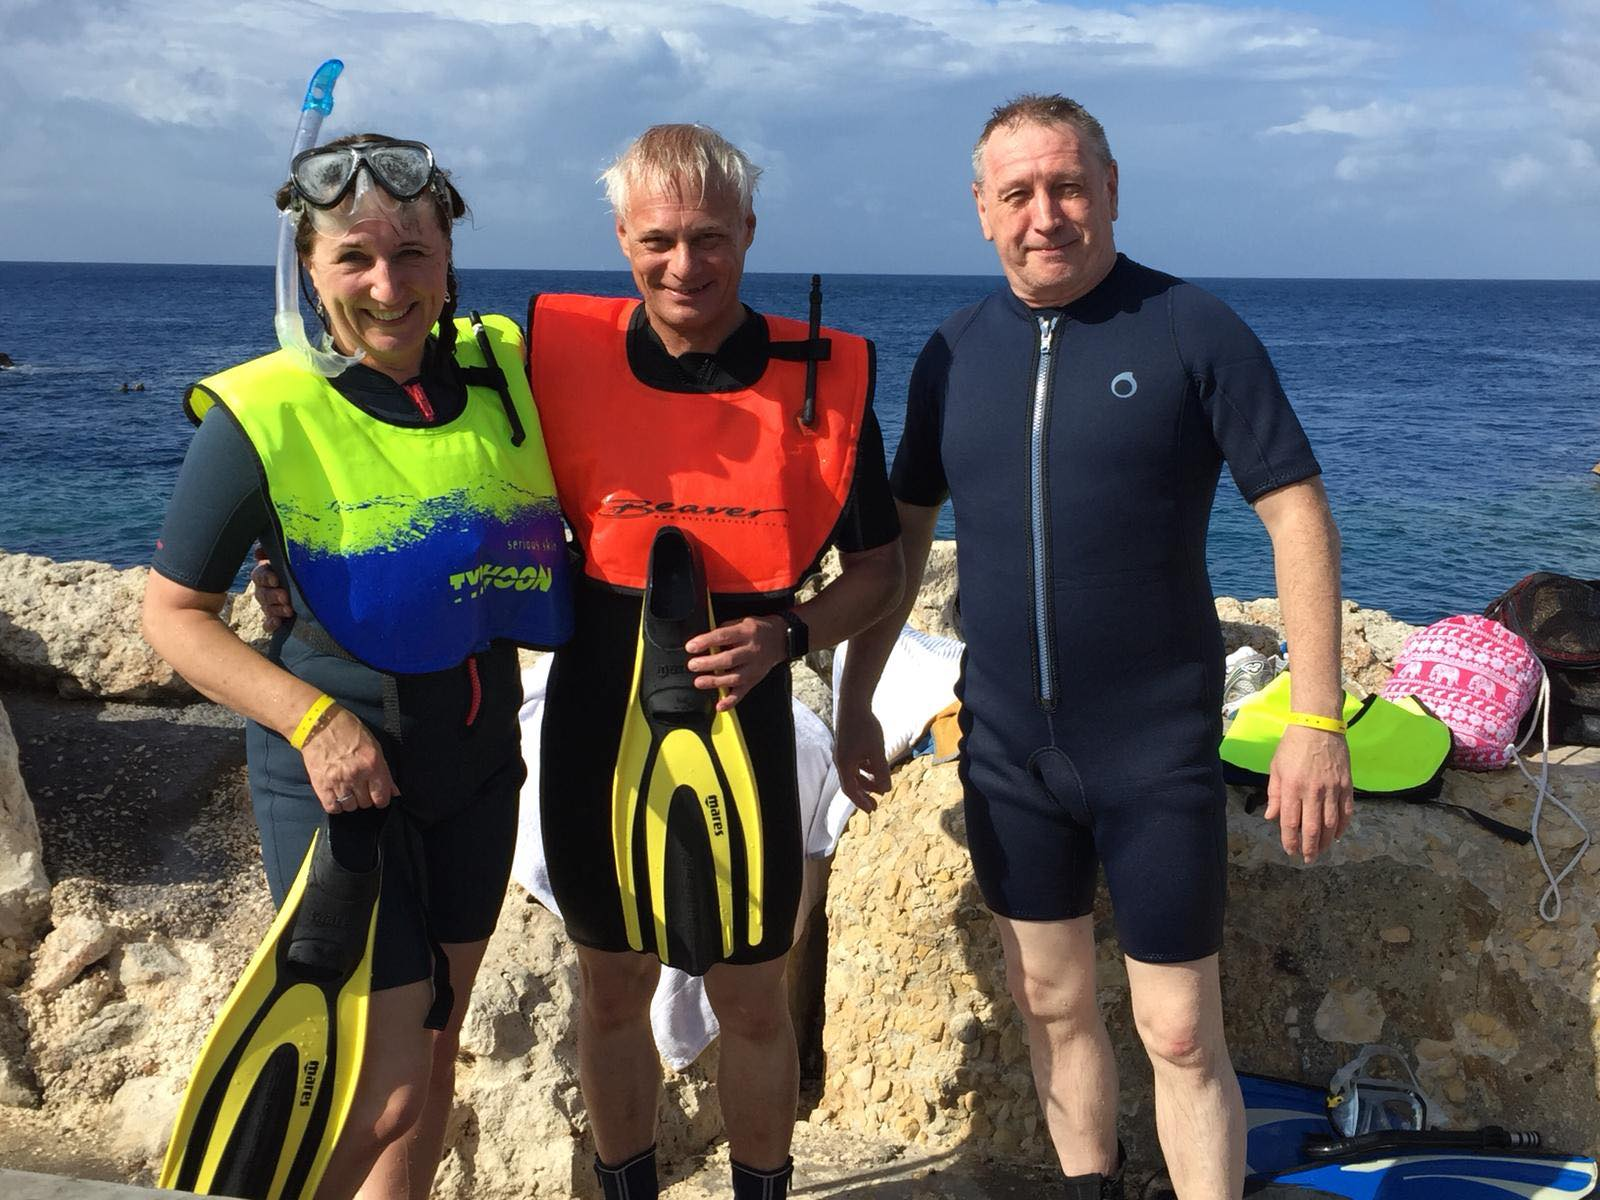 LUEC Snorkel instructor John with members Jackie and Phil in Malta (2019)